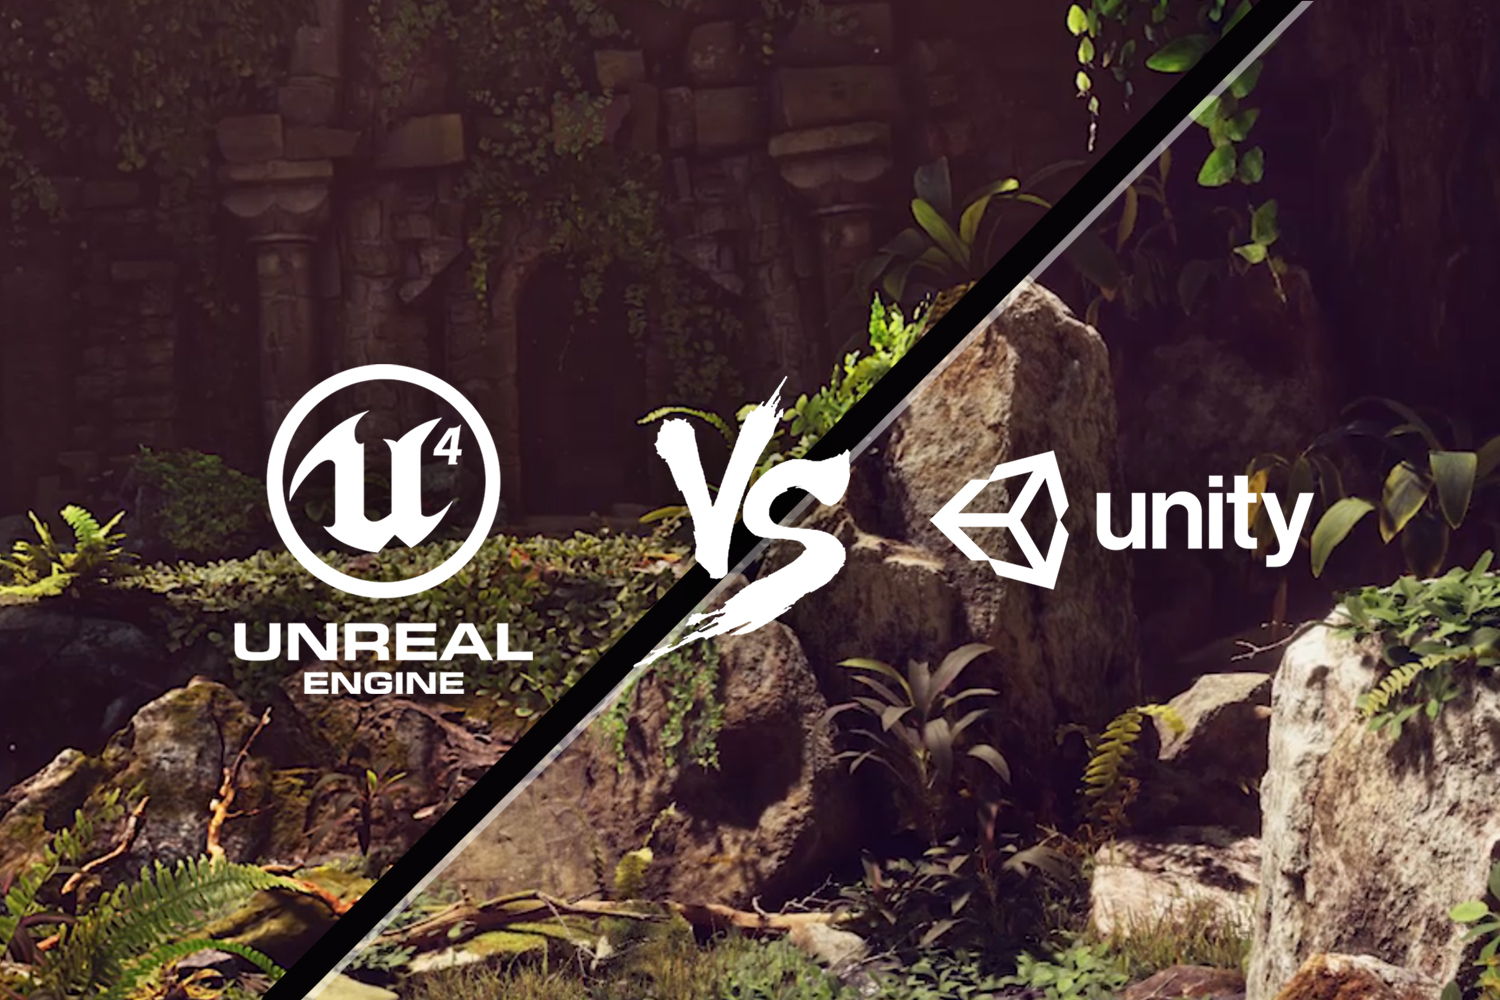 Unreal vs Unity: Choosing the engine that's right for you